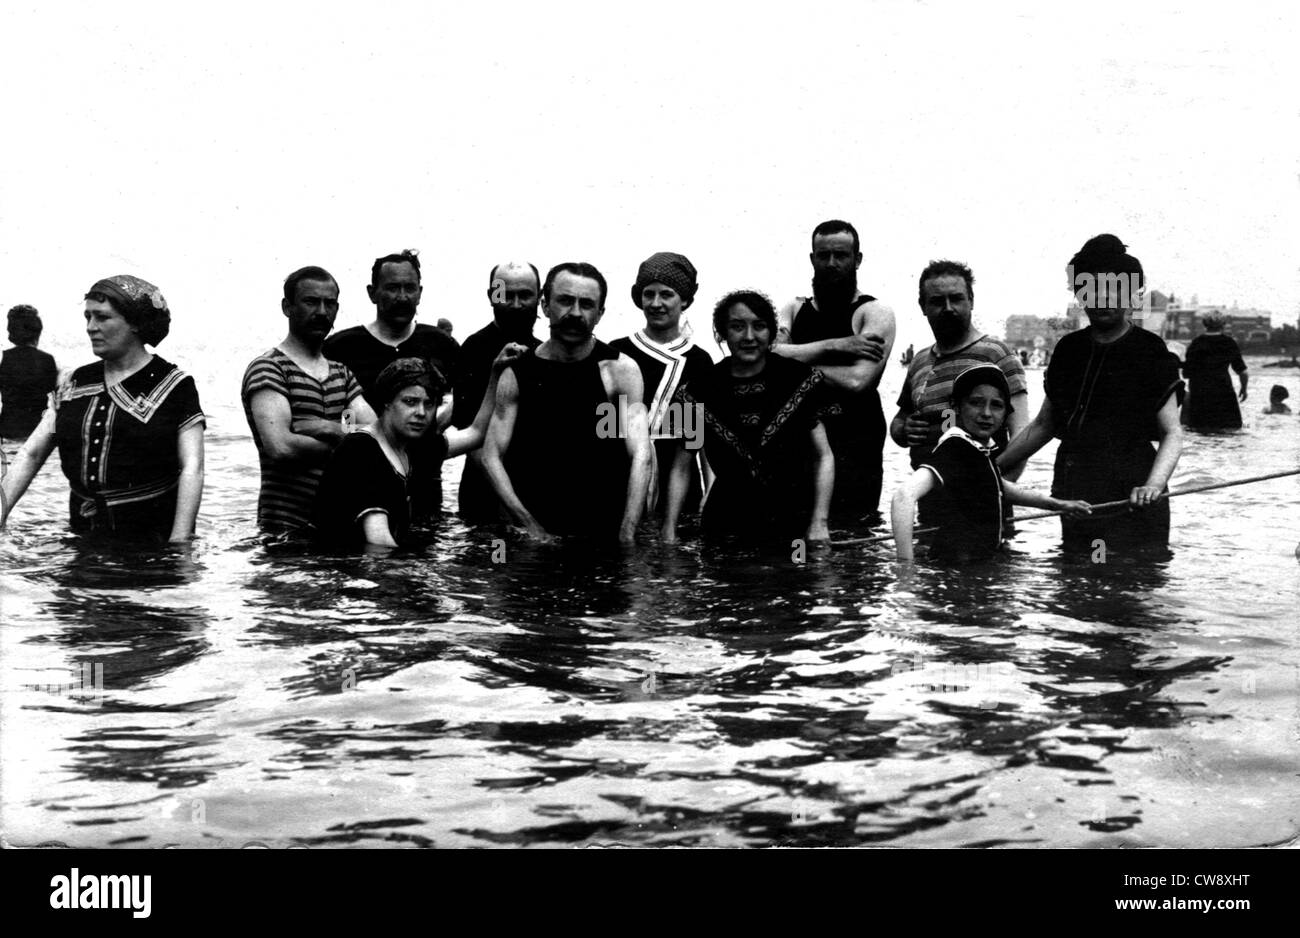 Bathers on the beach at Le Crotoy (Somme) - Stock Image